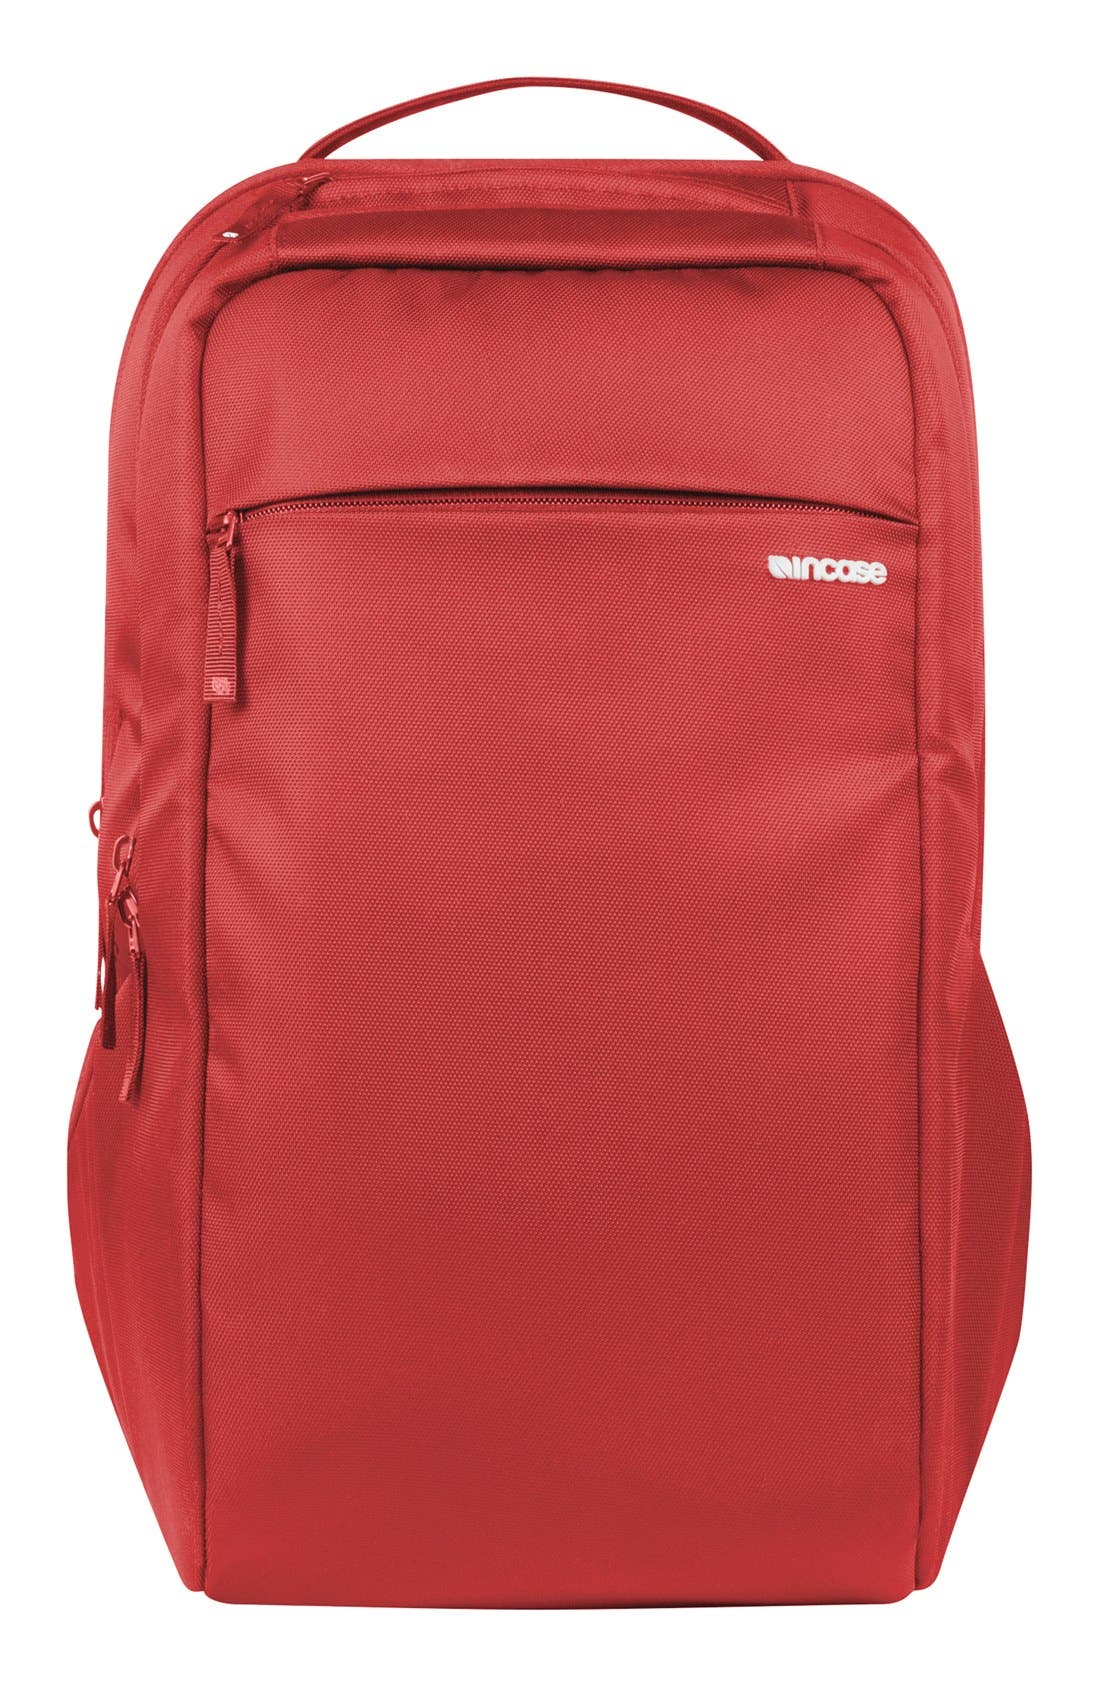 Icon Backpack,                             Main thumbnail 1, color,                             Red